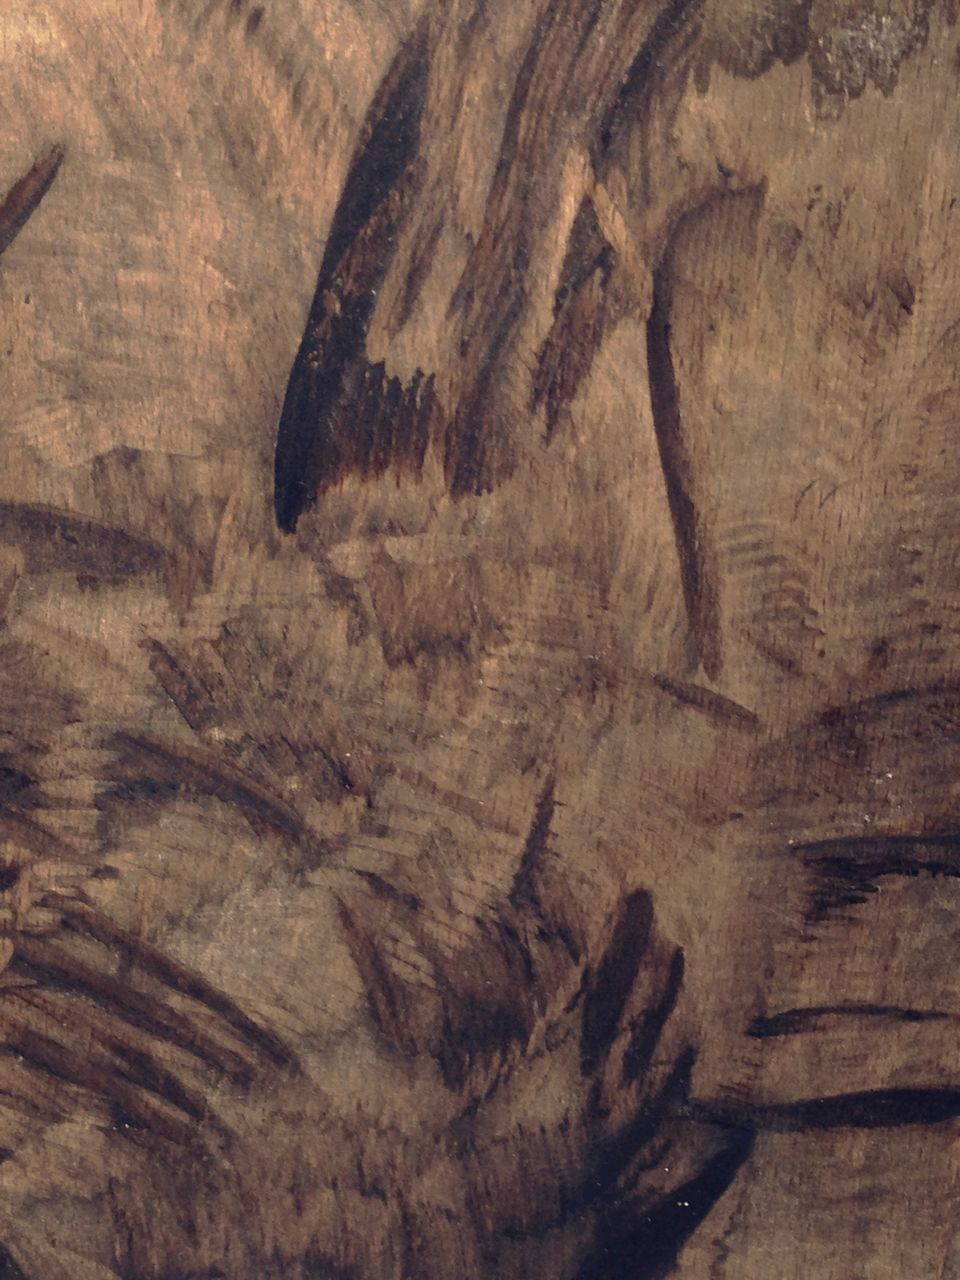 backgrounds, wood - material, brown, textured, pattern, full frame, ancient, no people, wood grain, nature, close-up, indoors, day